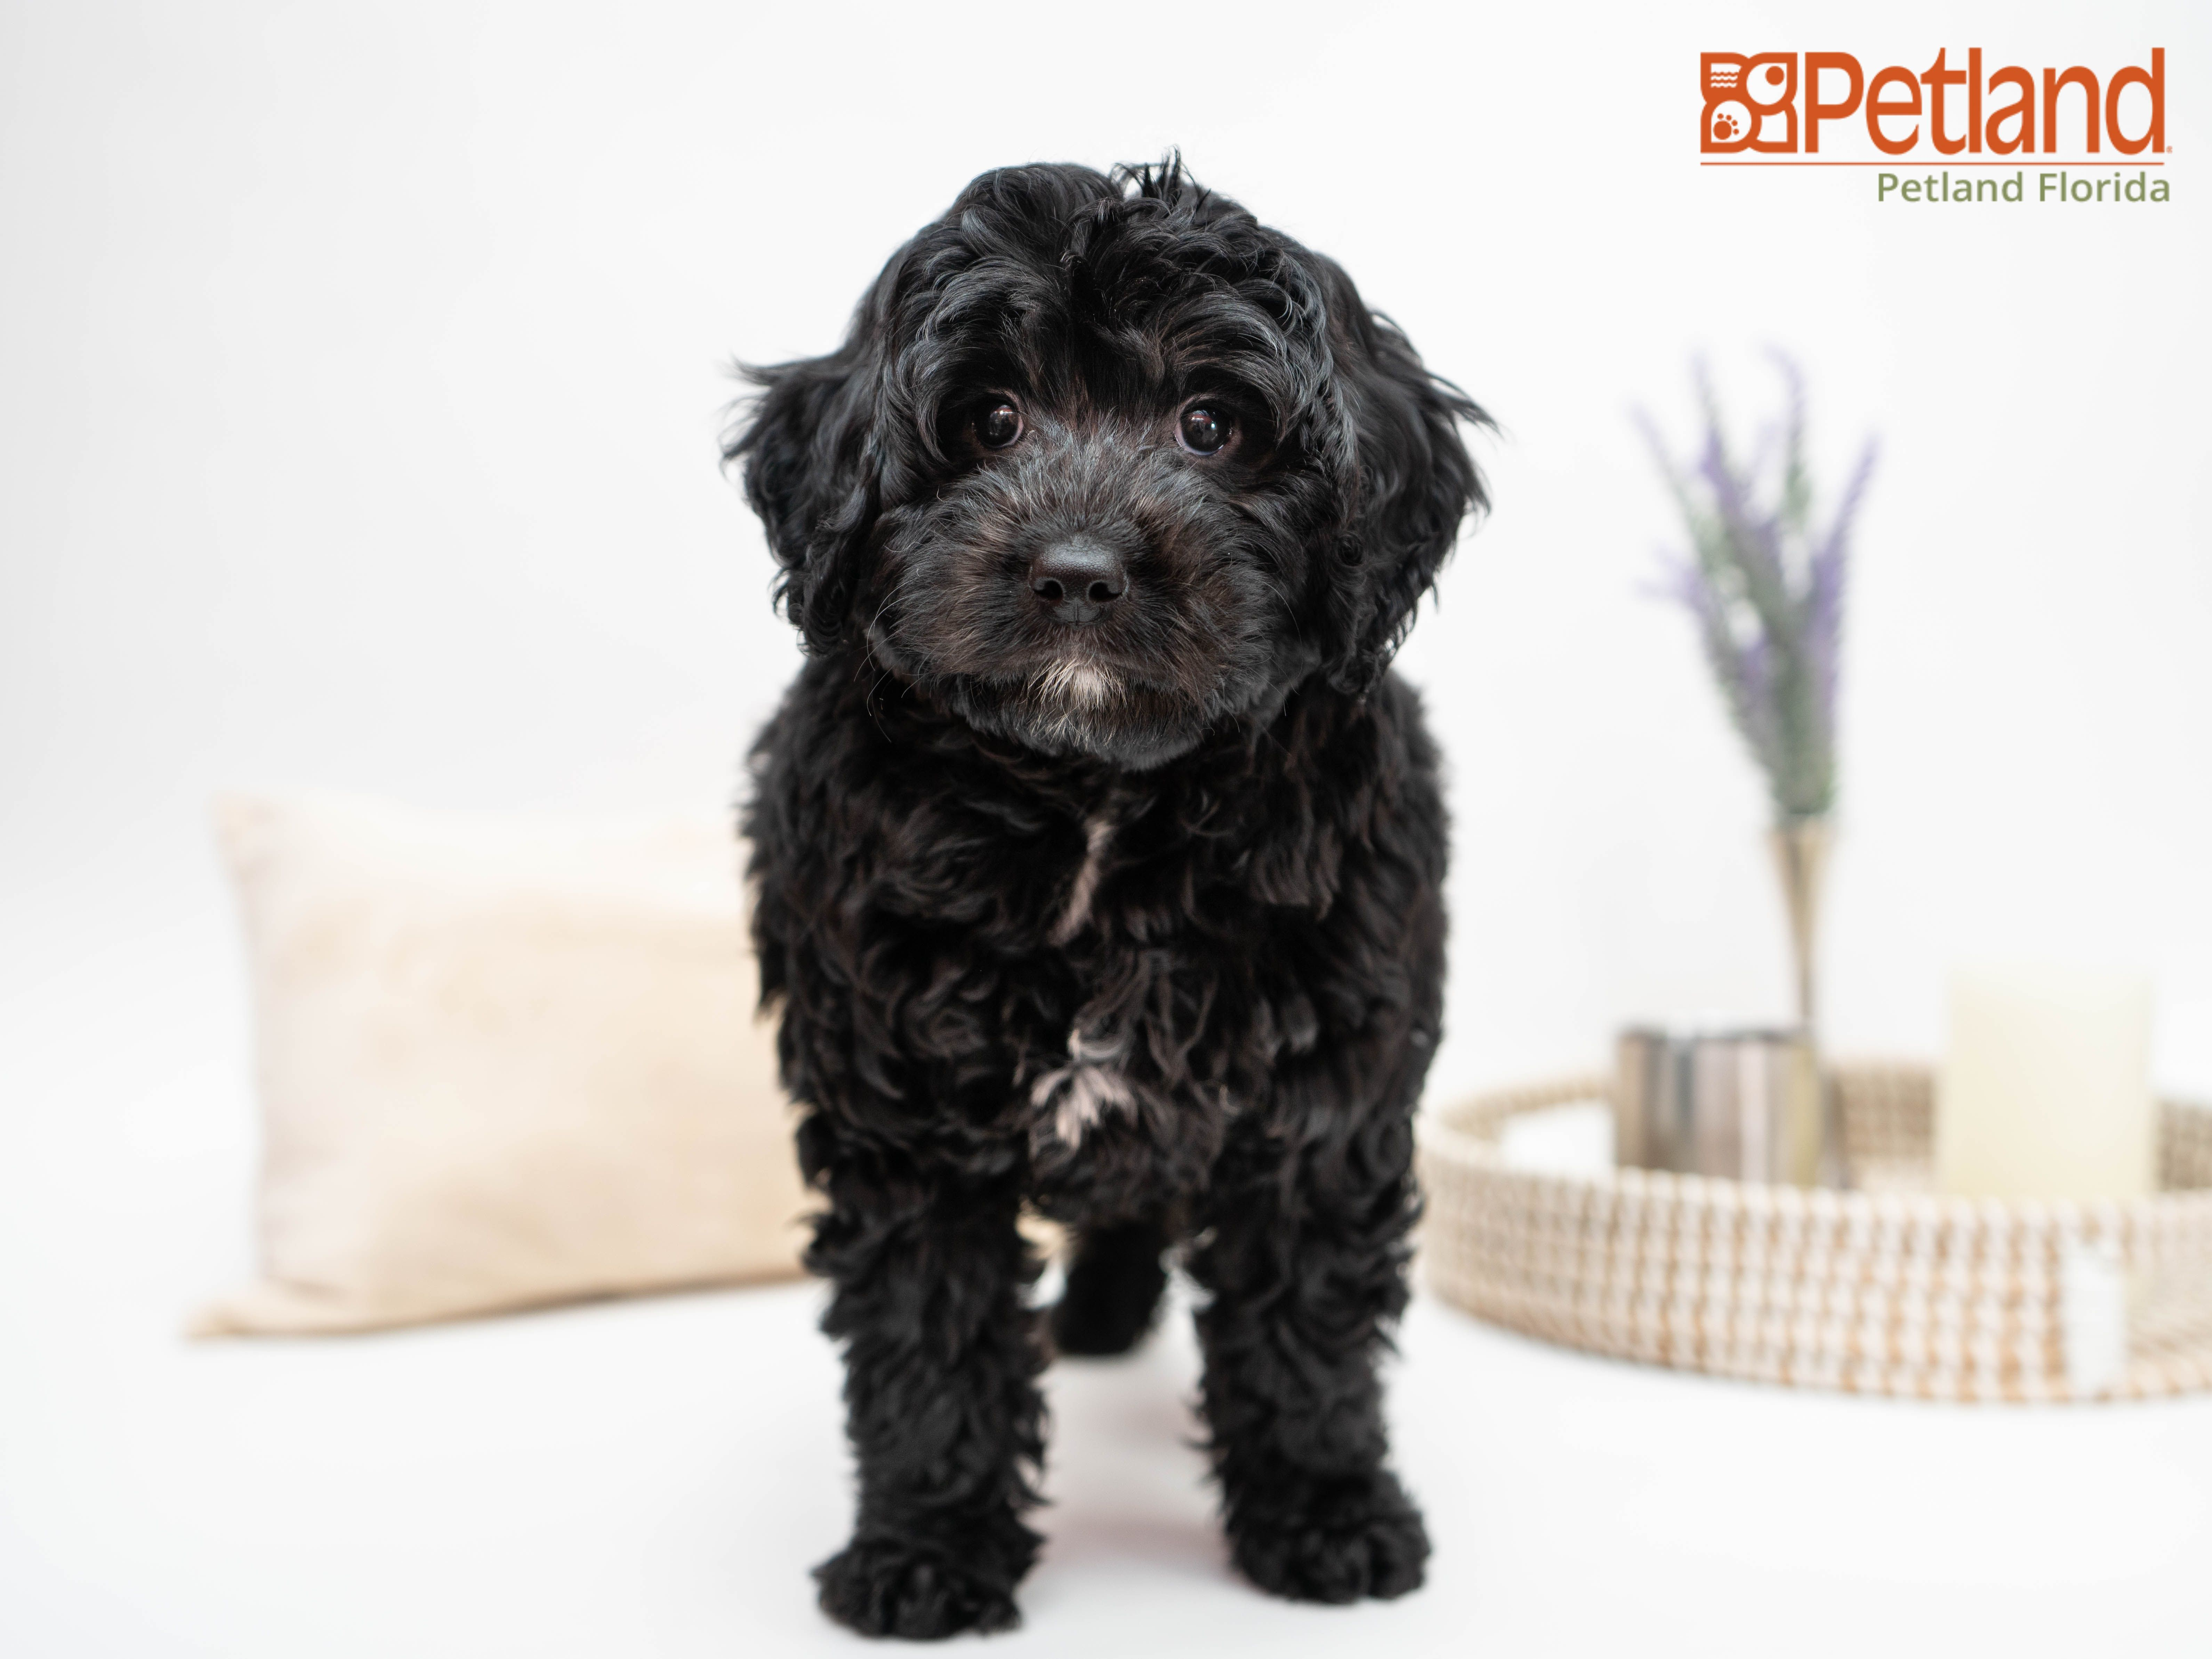 Puppies For Sale Goldendoodle Puppy For Sale Mini Goldendoodle Puppies Puppies